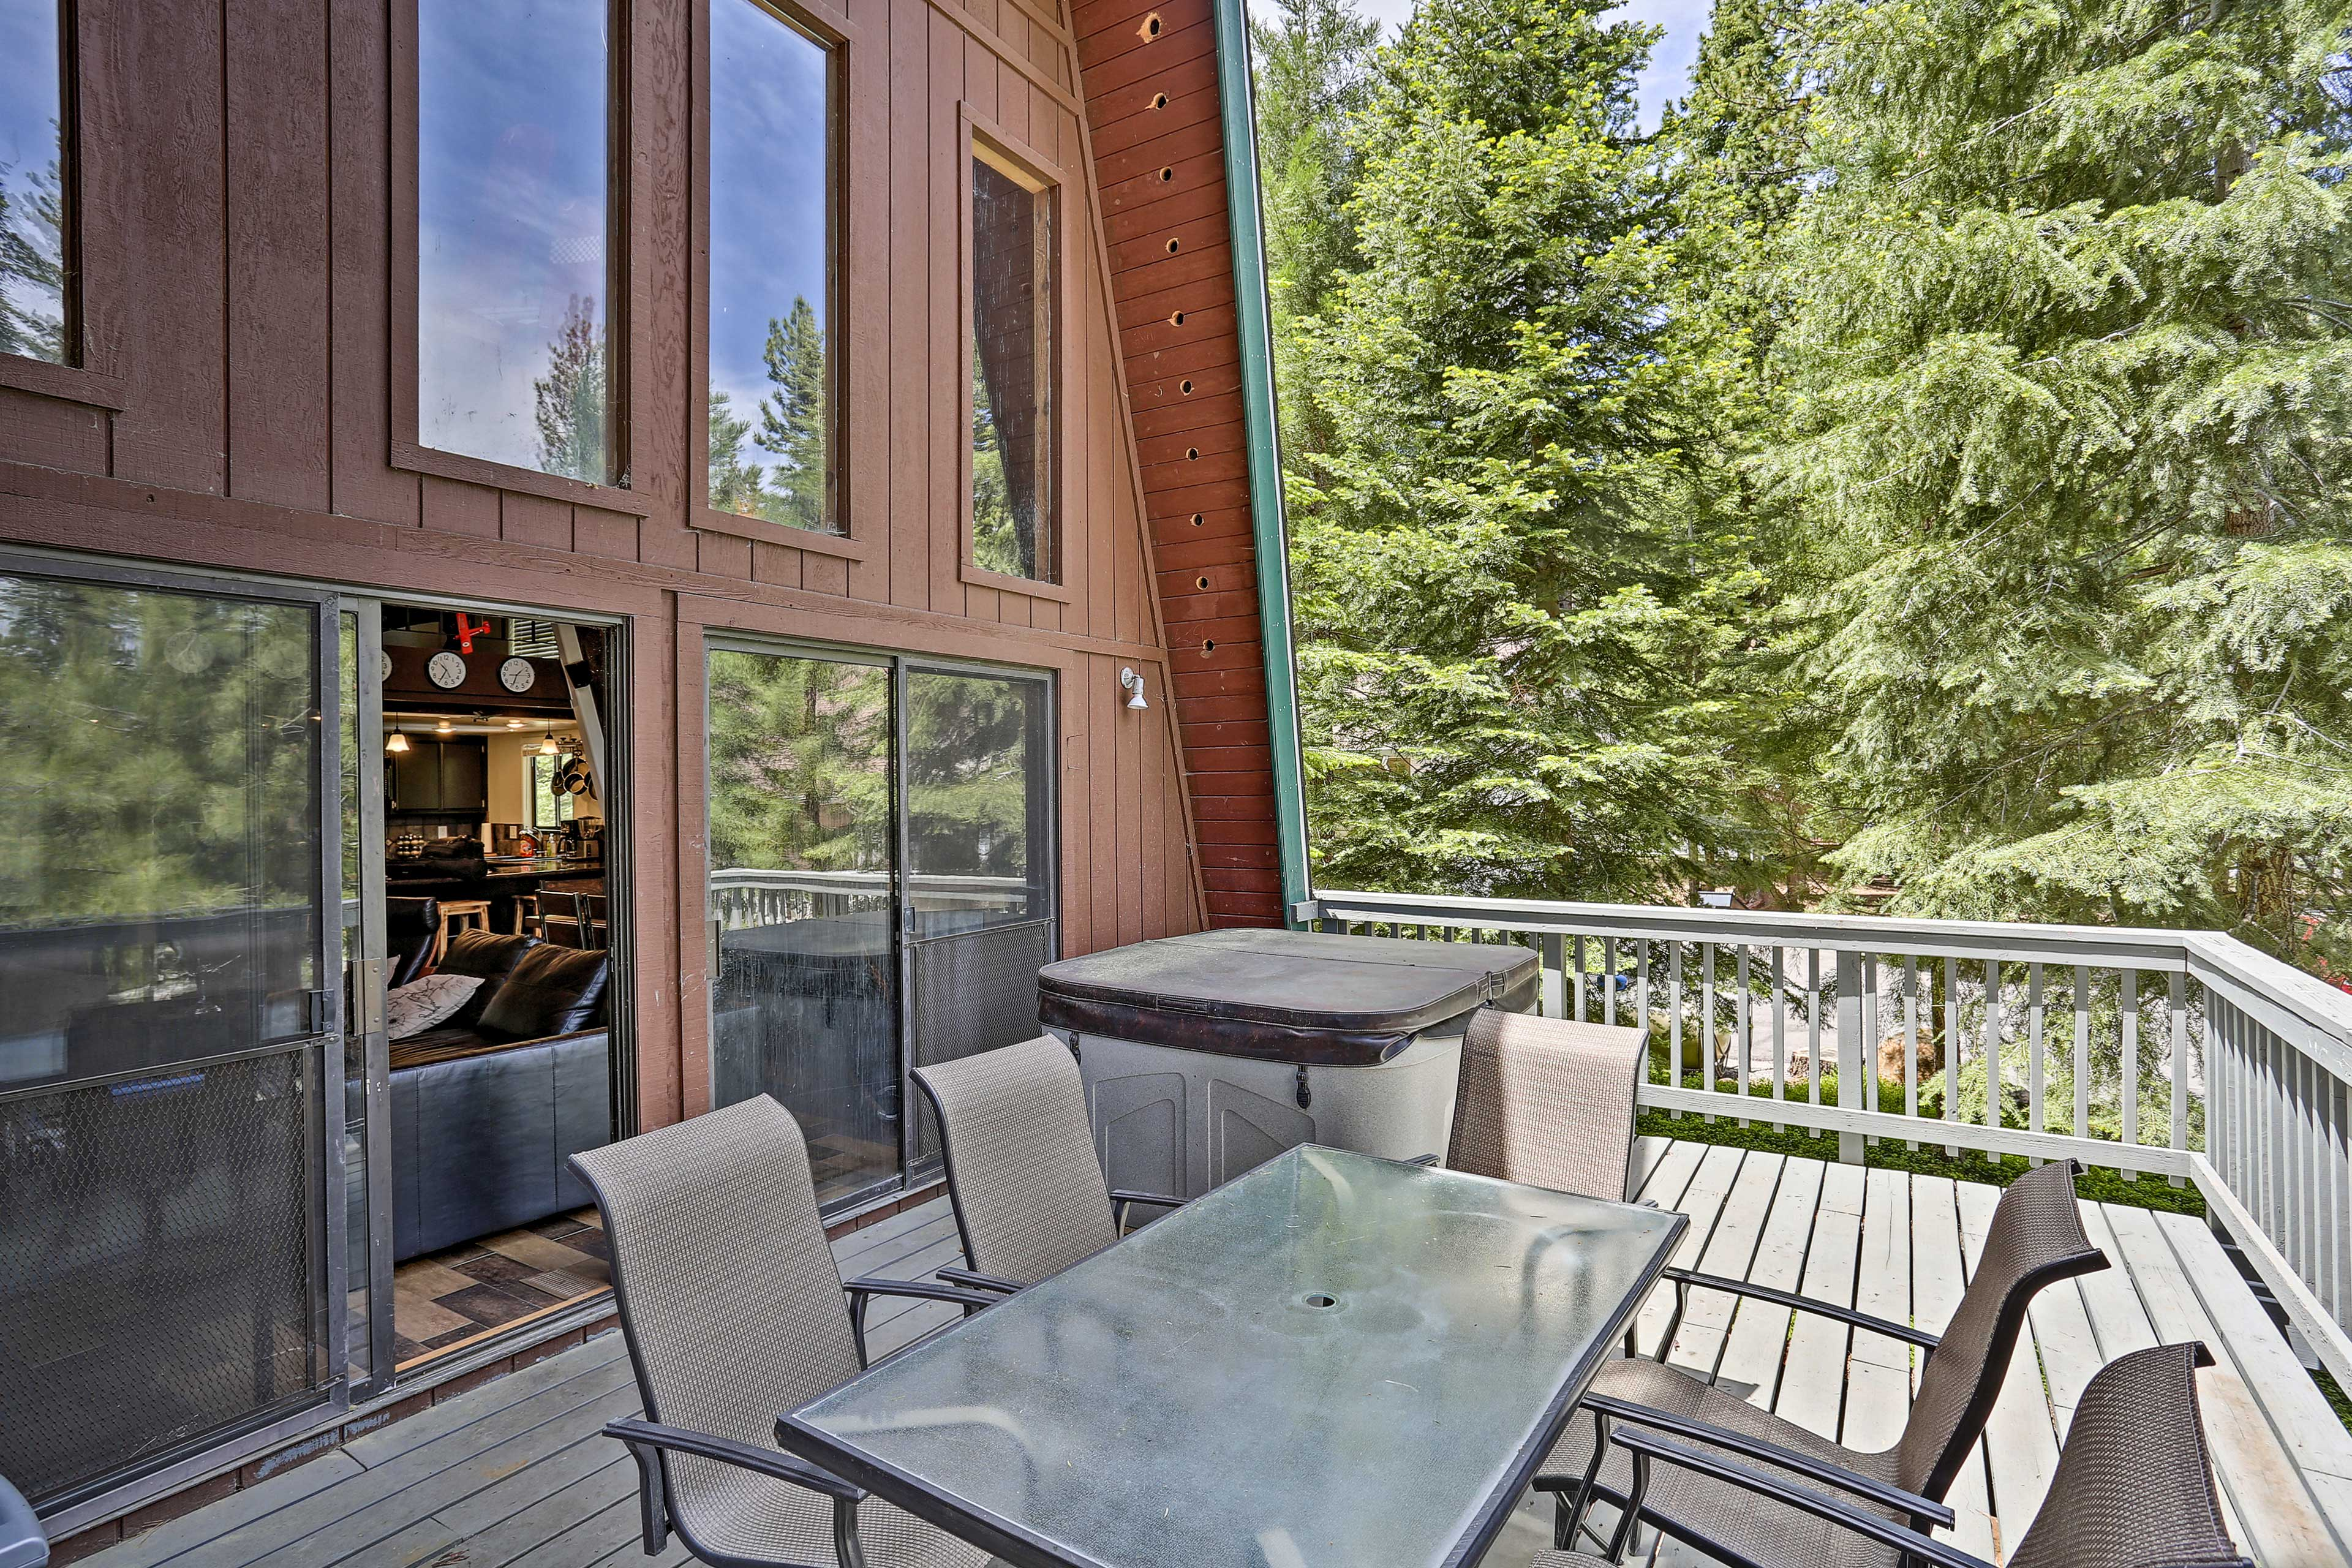 The deck is surrounded by tall pines for privacy.